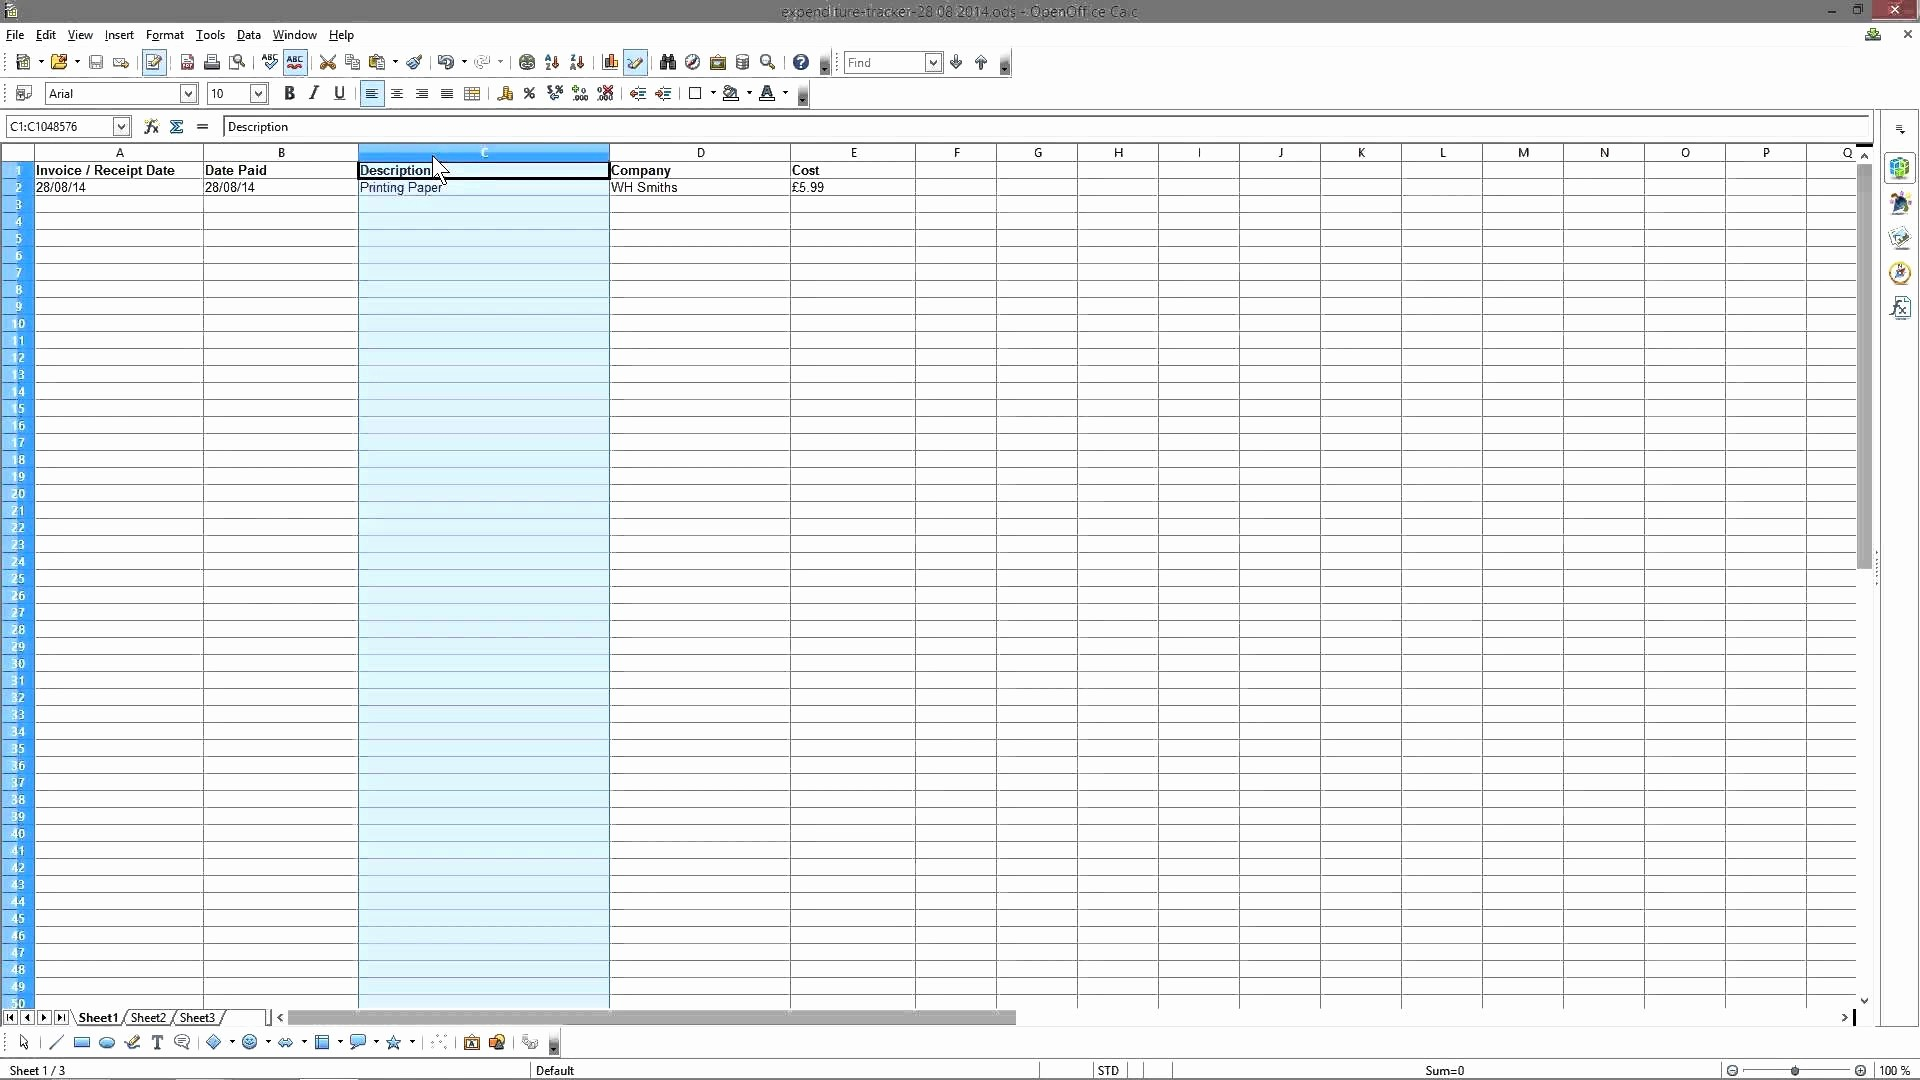 Excel Template For Small Business Bookkeeping Spreadsheet Examples For Excel Template For Small Business Bookkeeping